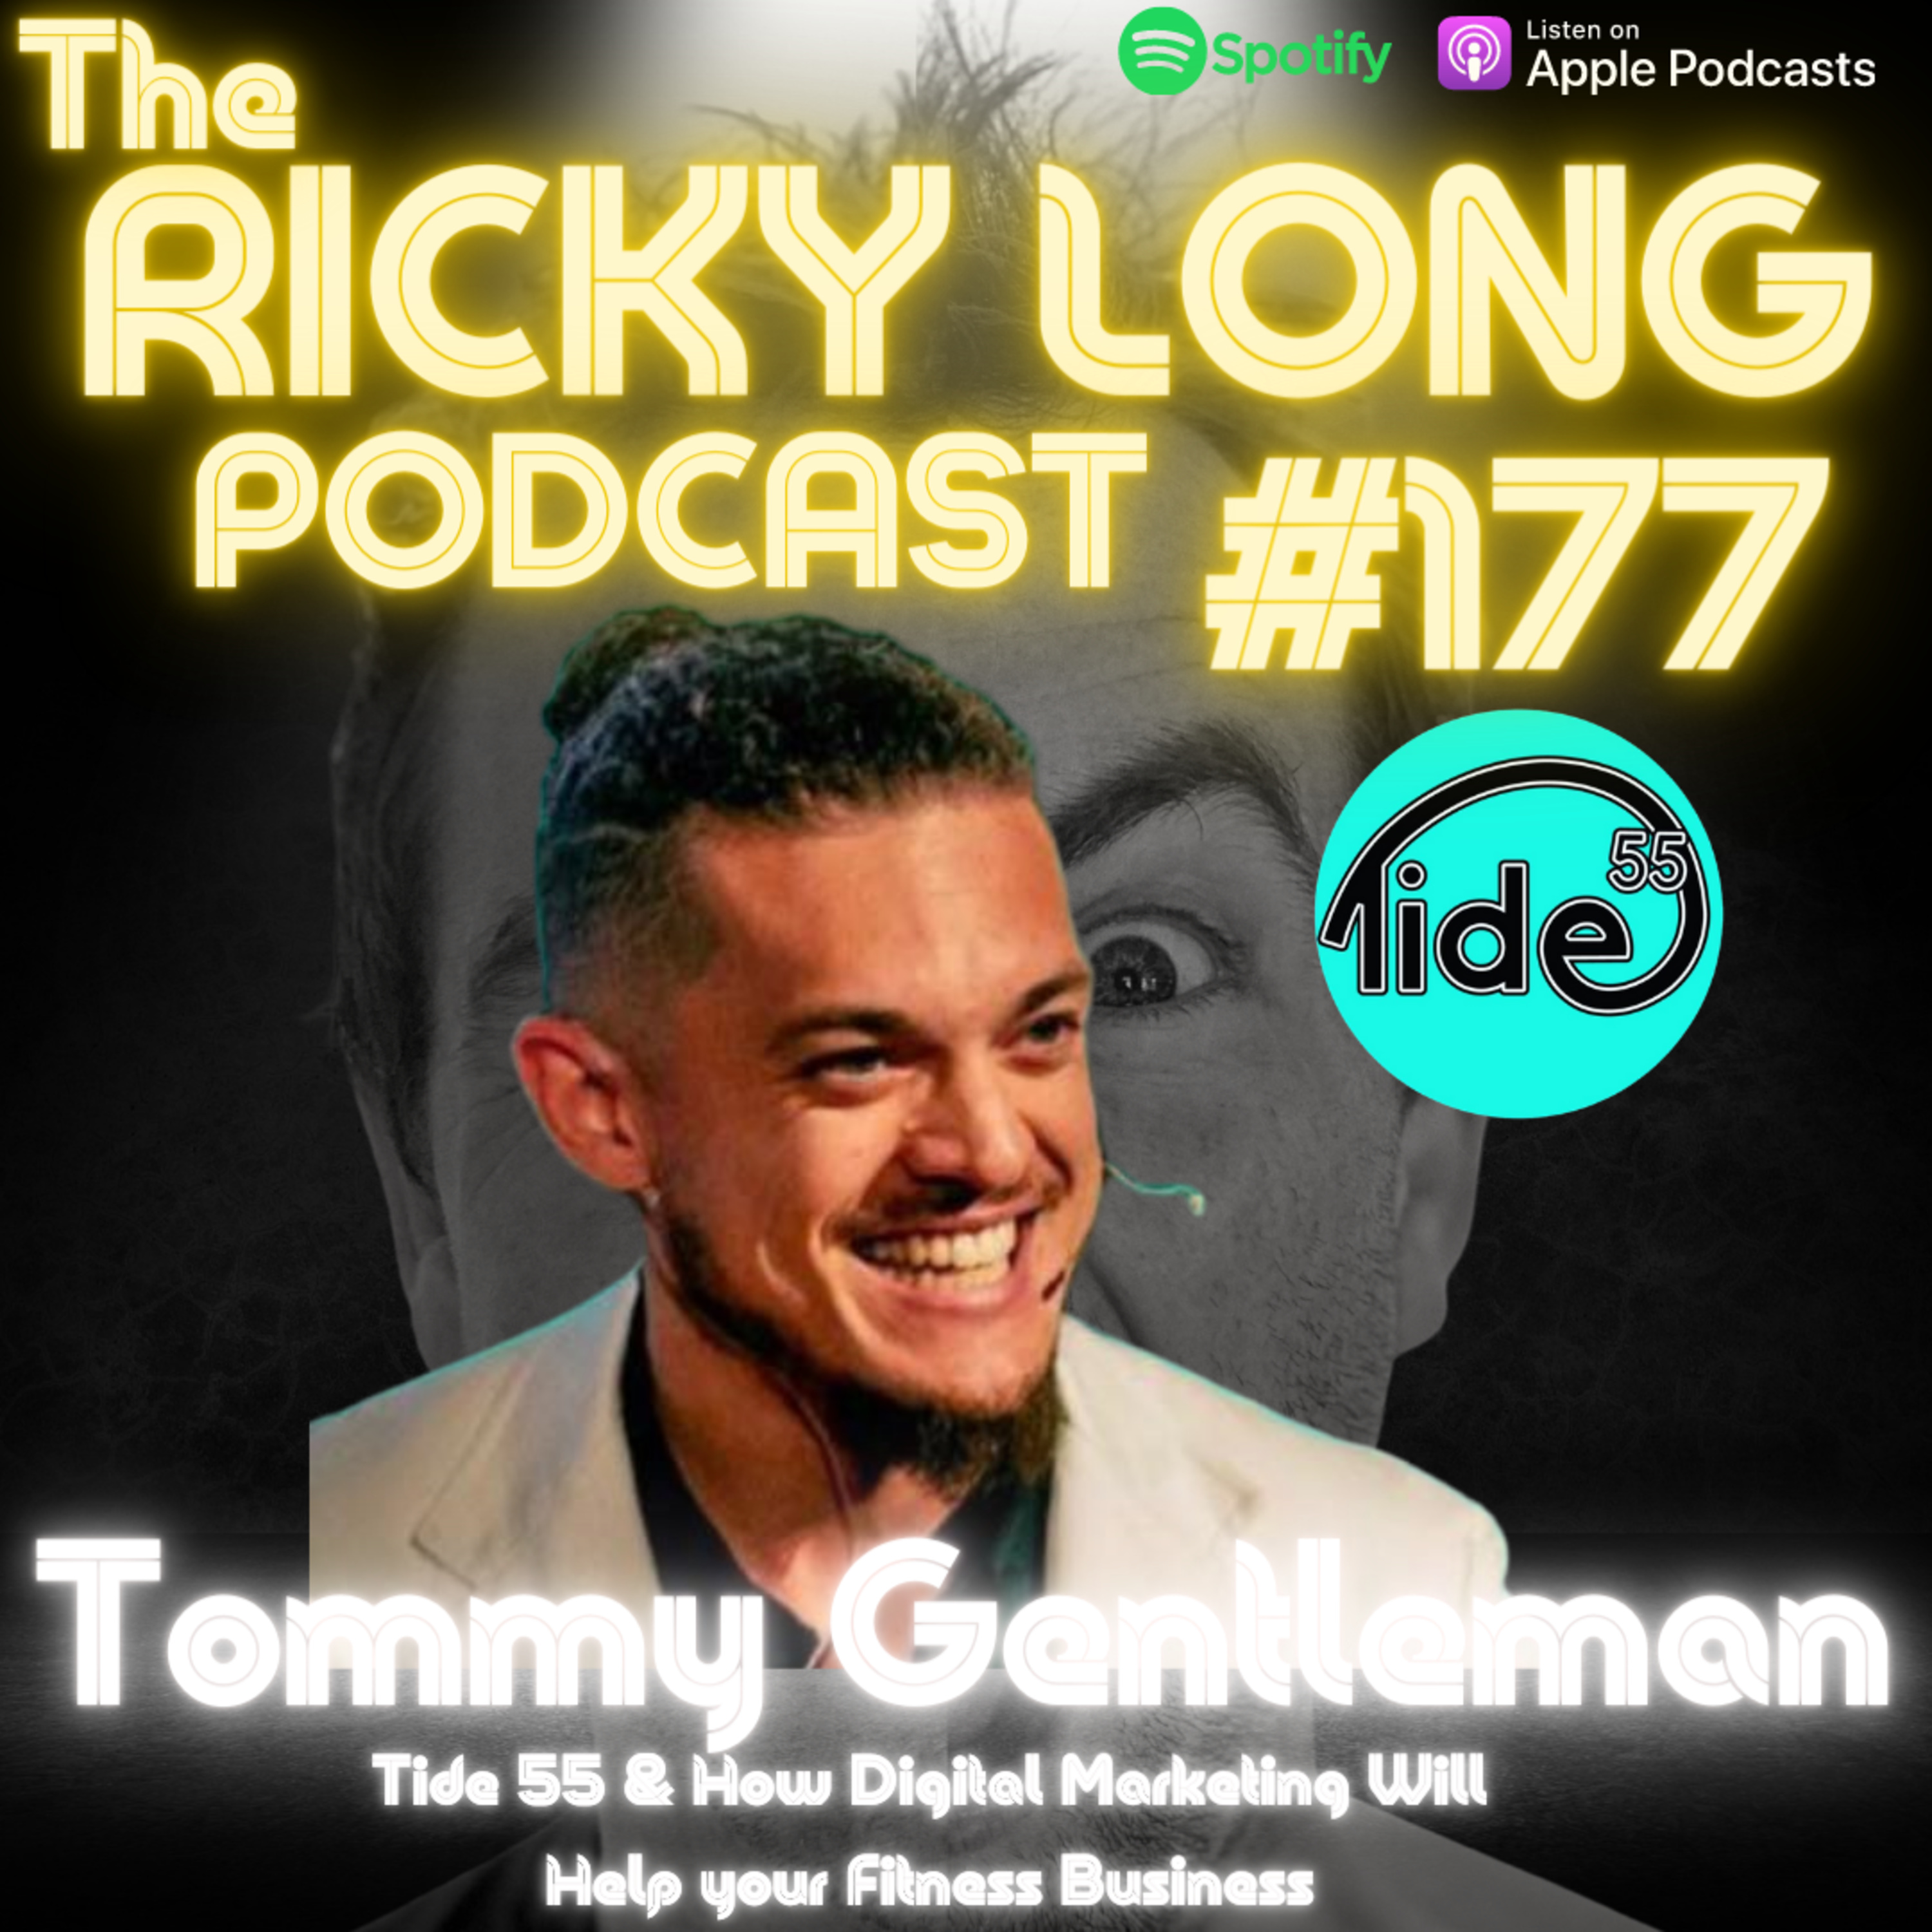 #177 Tommy Gentleman - How Digital Marketing Can Help Your Fitness Business in 2021